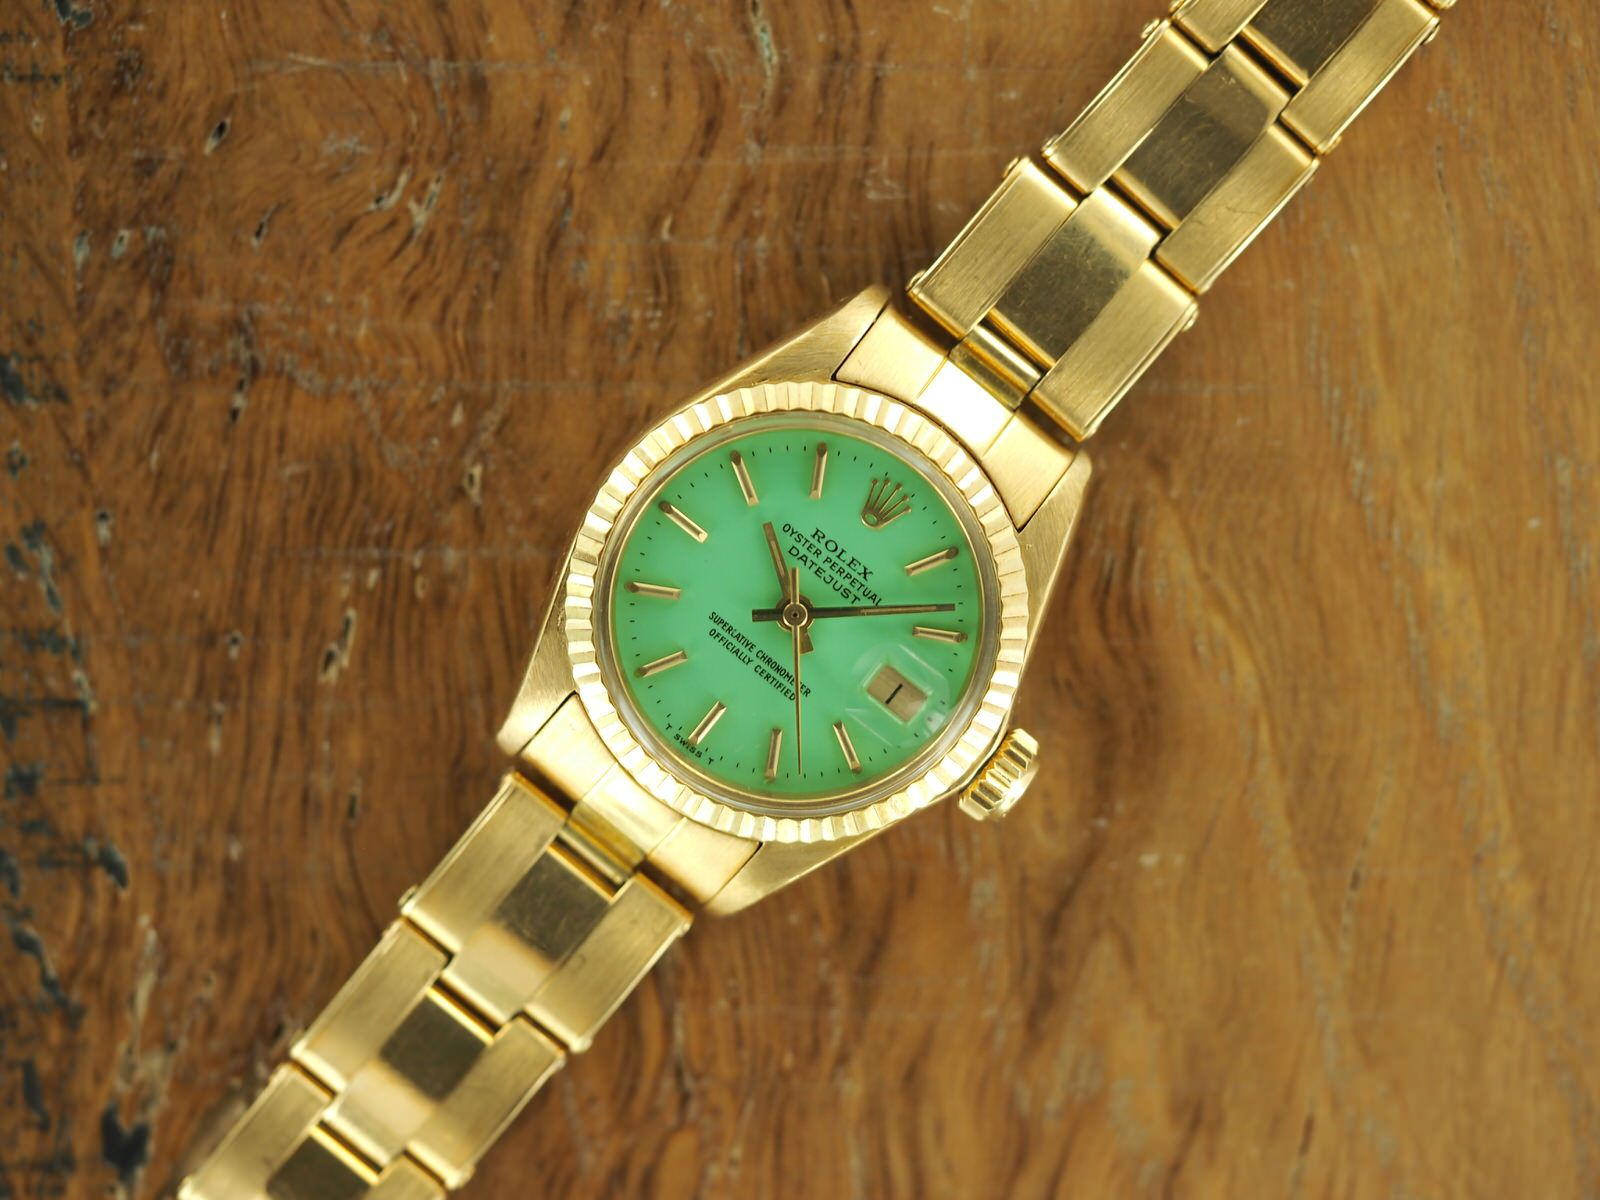 7f90b8b67df 18k Gold Rolex Ladies Datejust Ref. 6917 Mint Green Stella Dial ...